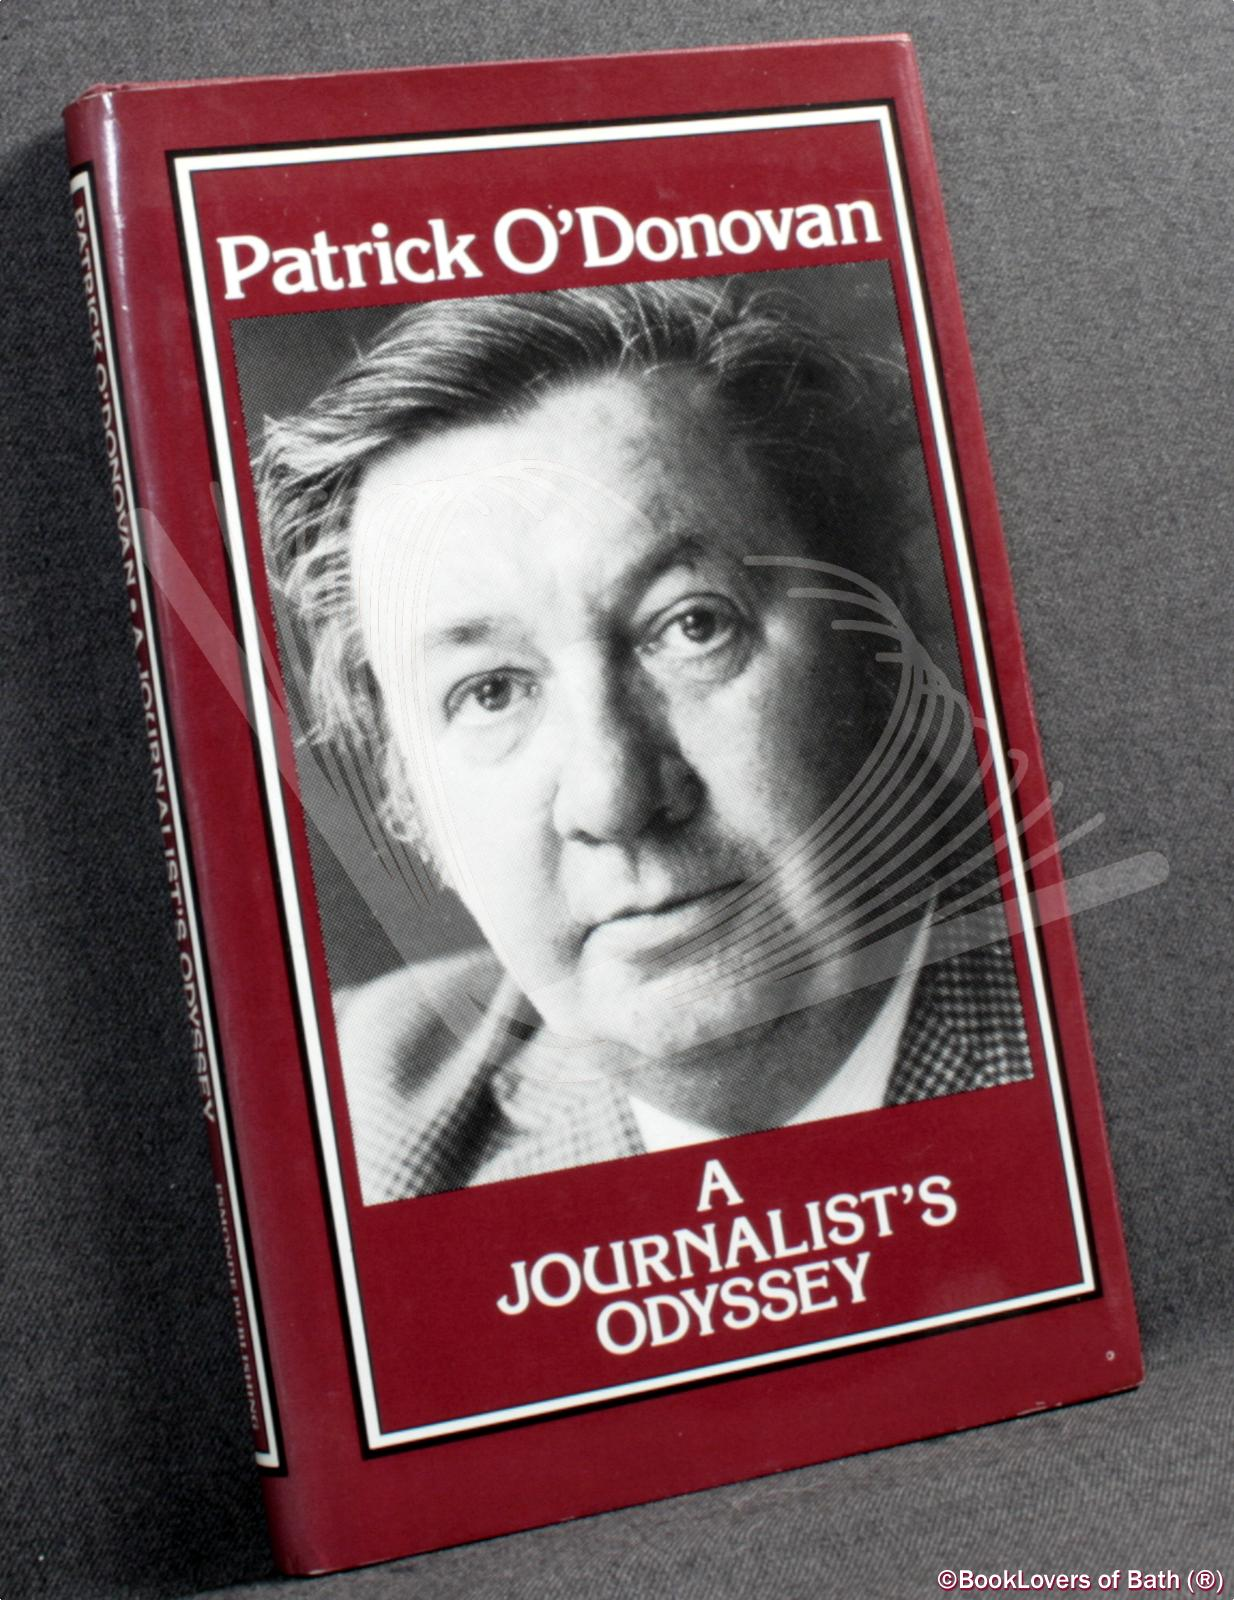 A Journalist's Odyssey: With a Personal Recollection by Robert Kee and Biographical Notes by Hermione O'Donovan - Patrick O'Donovan